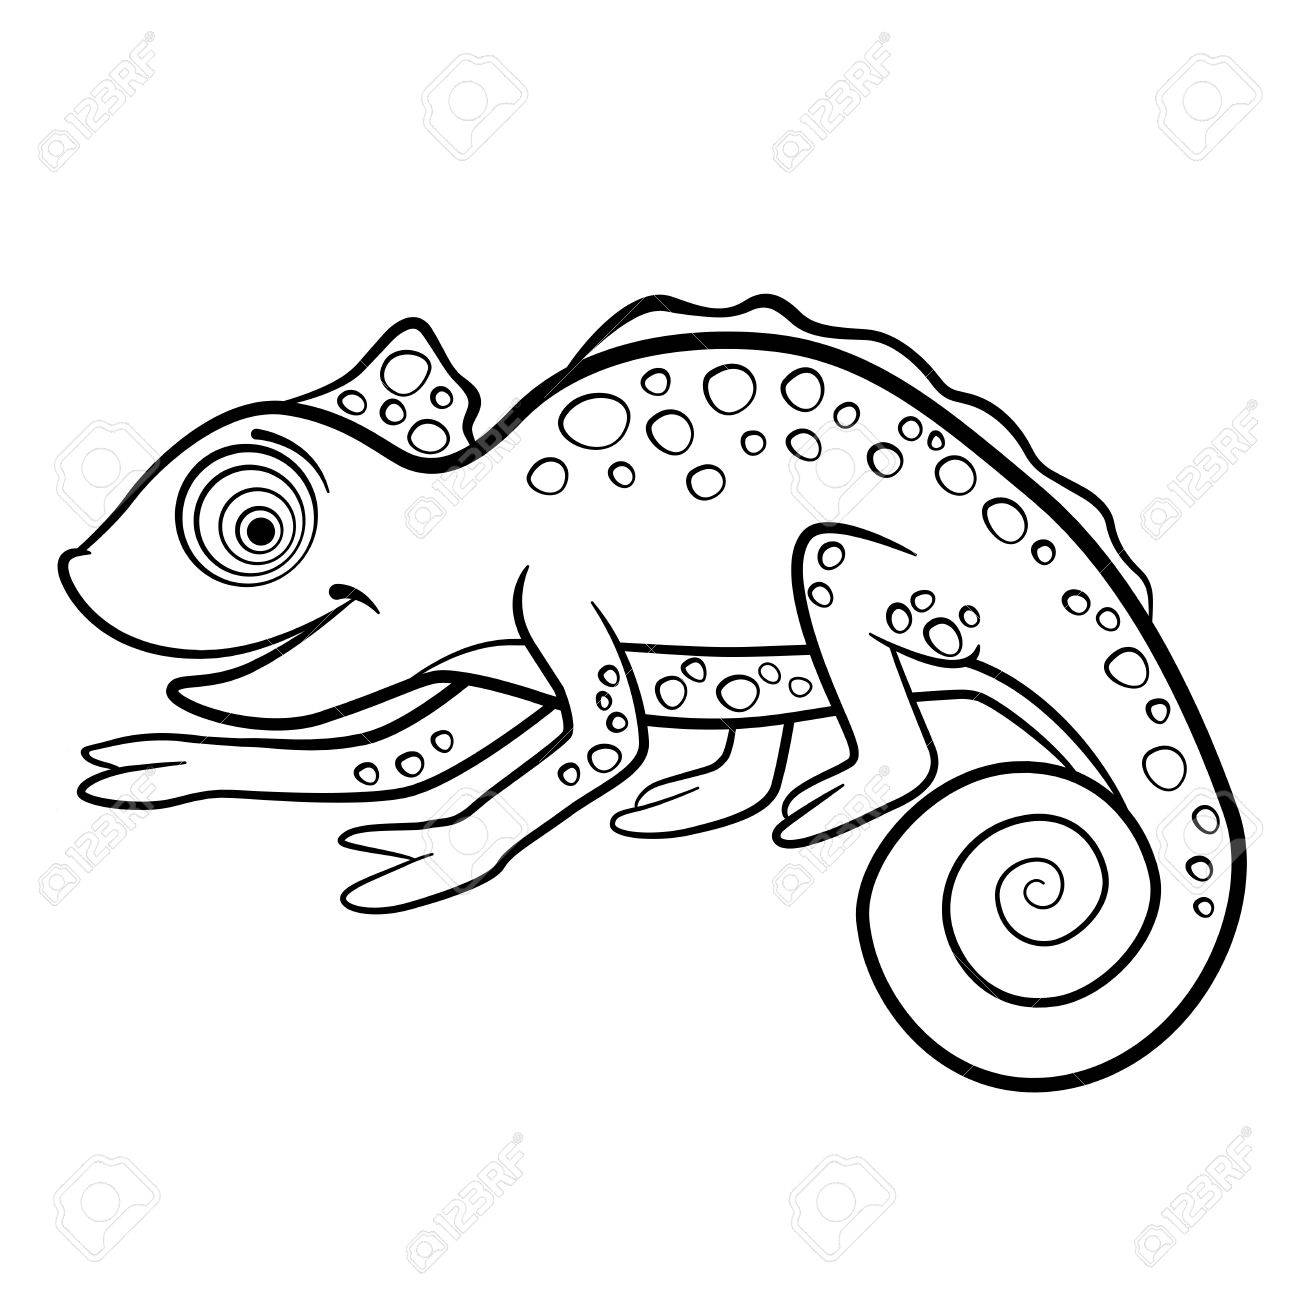 Coloring Pages. Wild Animals. Little Cute Chameleon Smiles. Royalty ...